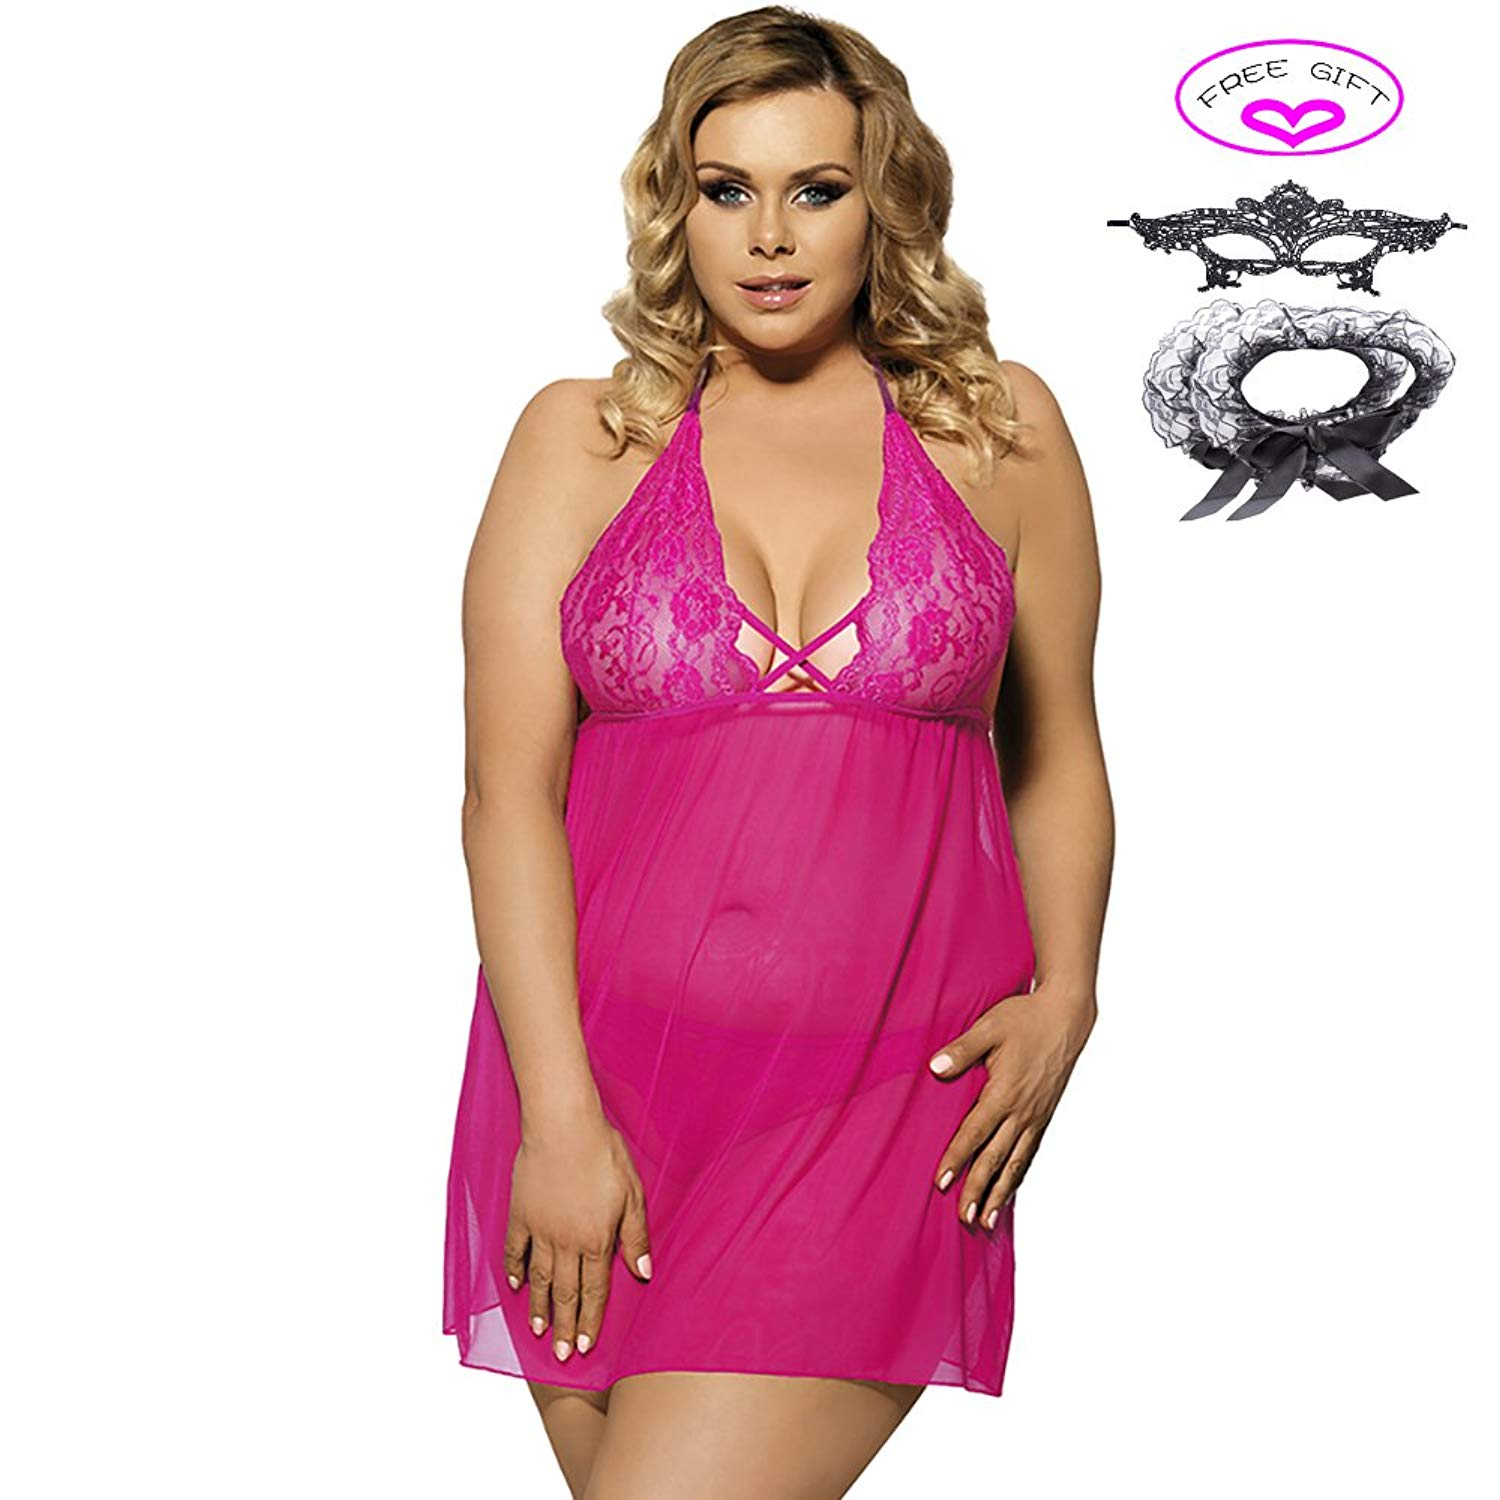 a944120d85f Get Quotations · Babydolls See-through Plus Size Halter Sexy Chemise   G- string